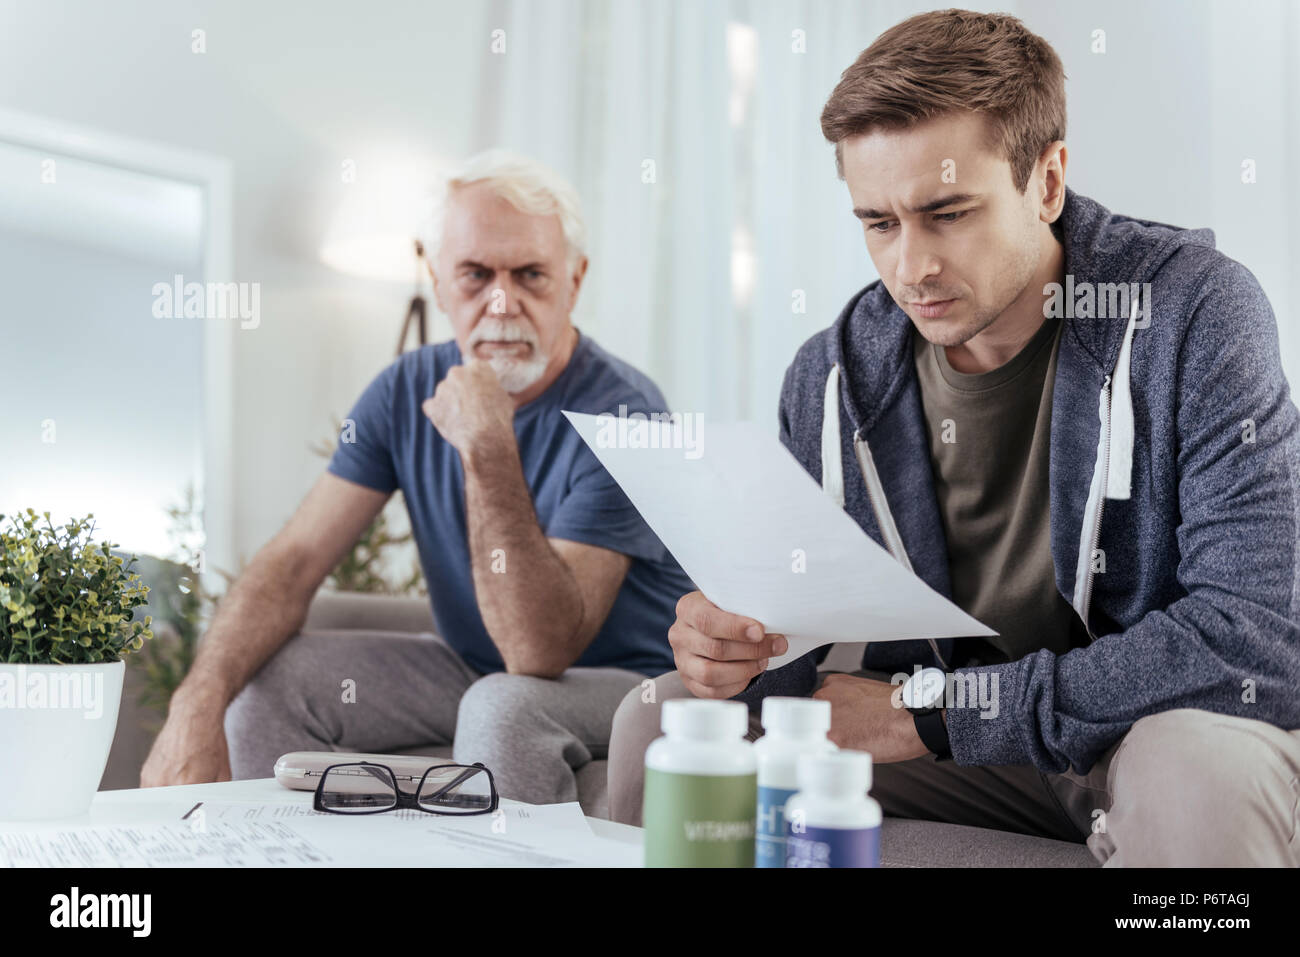 Uneasy pleasant man studying diagnosis - Stock Image